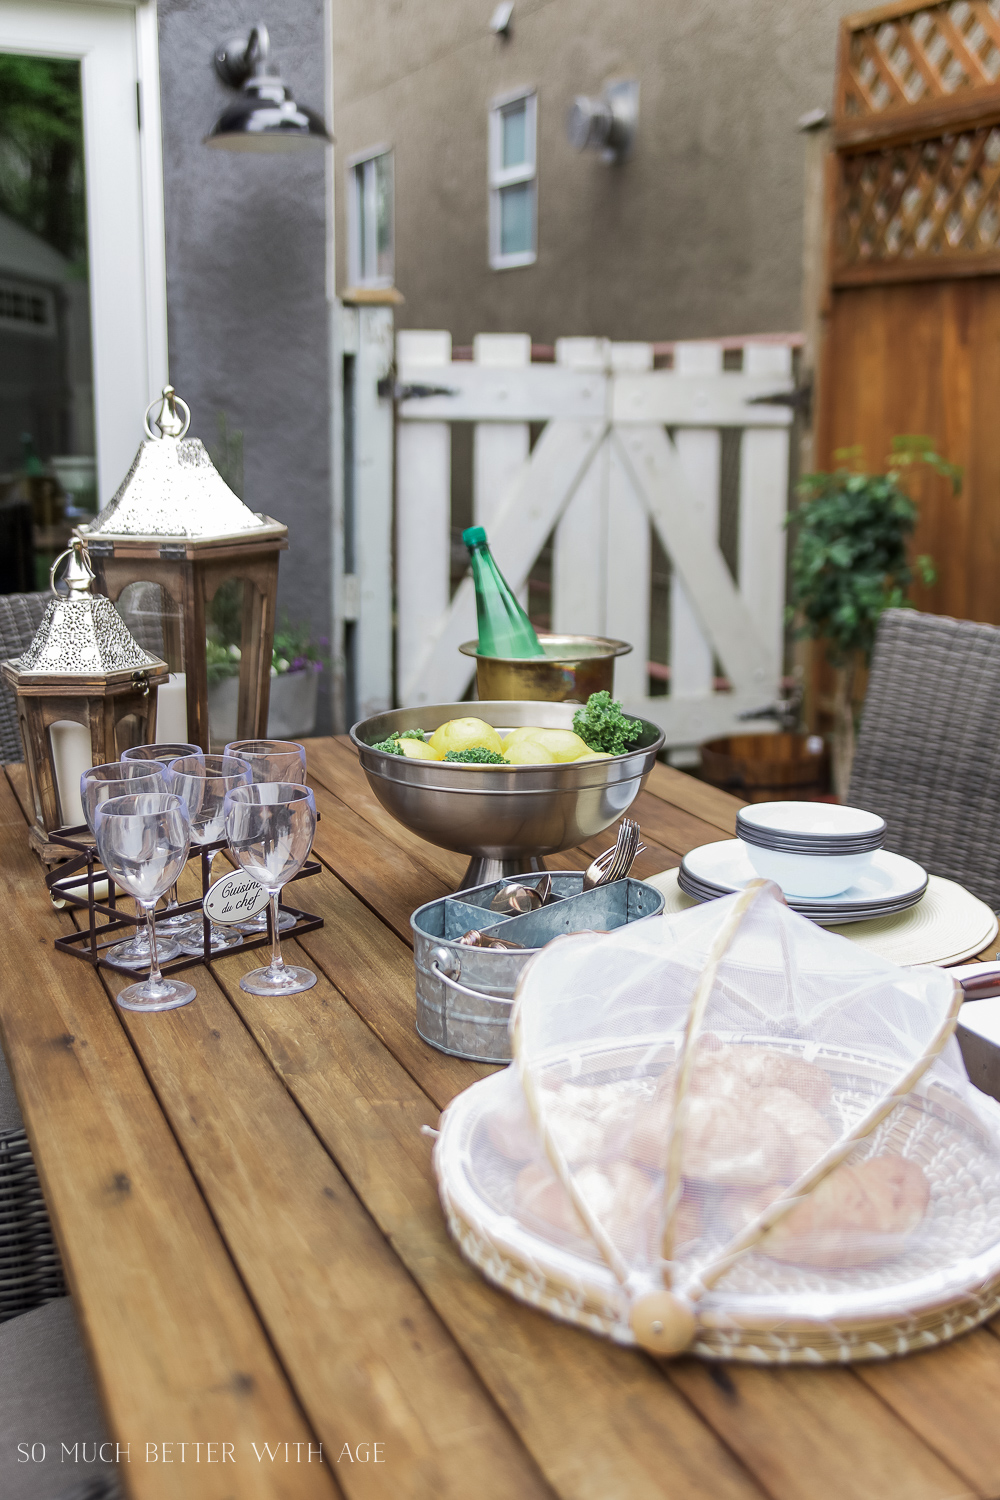 How to Set a Casual Outdoor Table French Vintage Style - So Much Better With Age